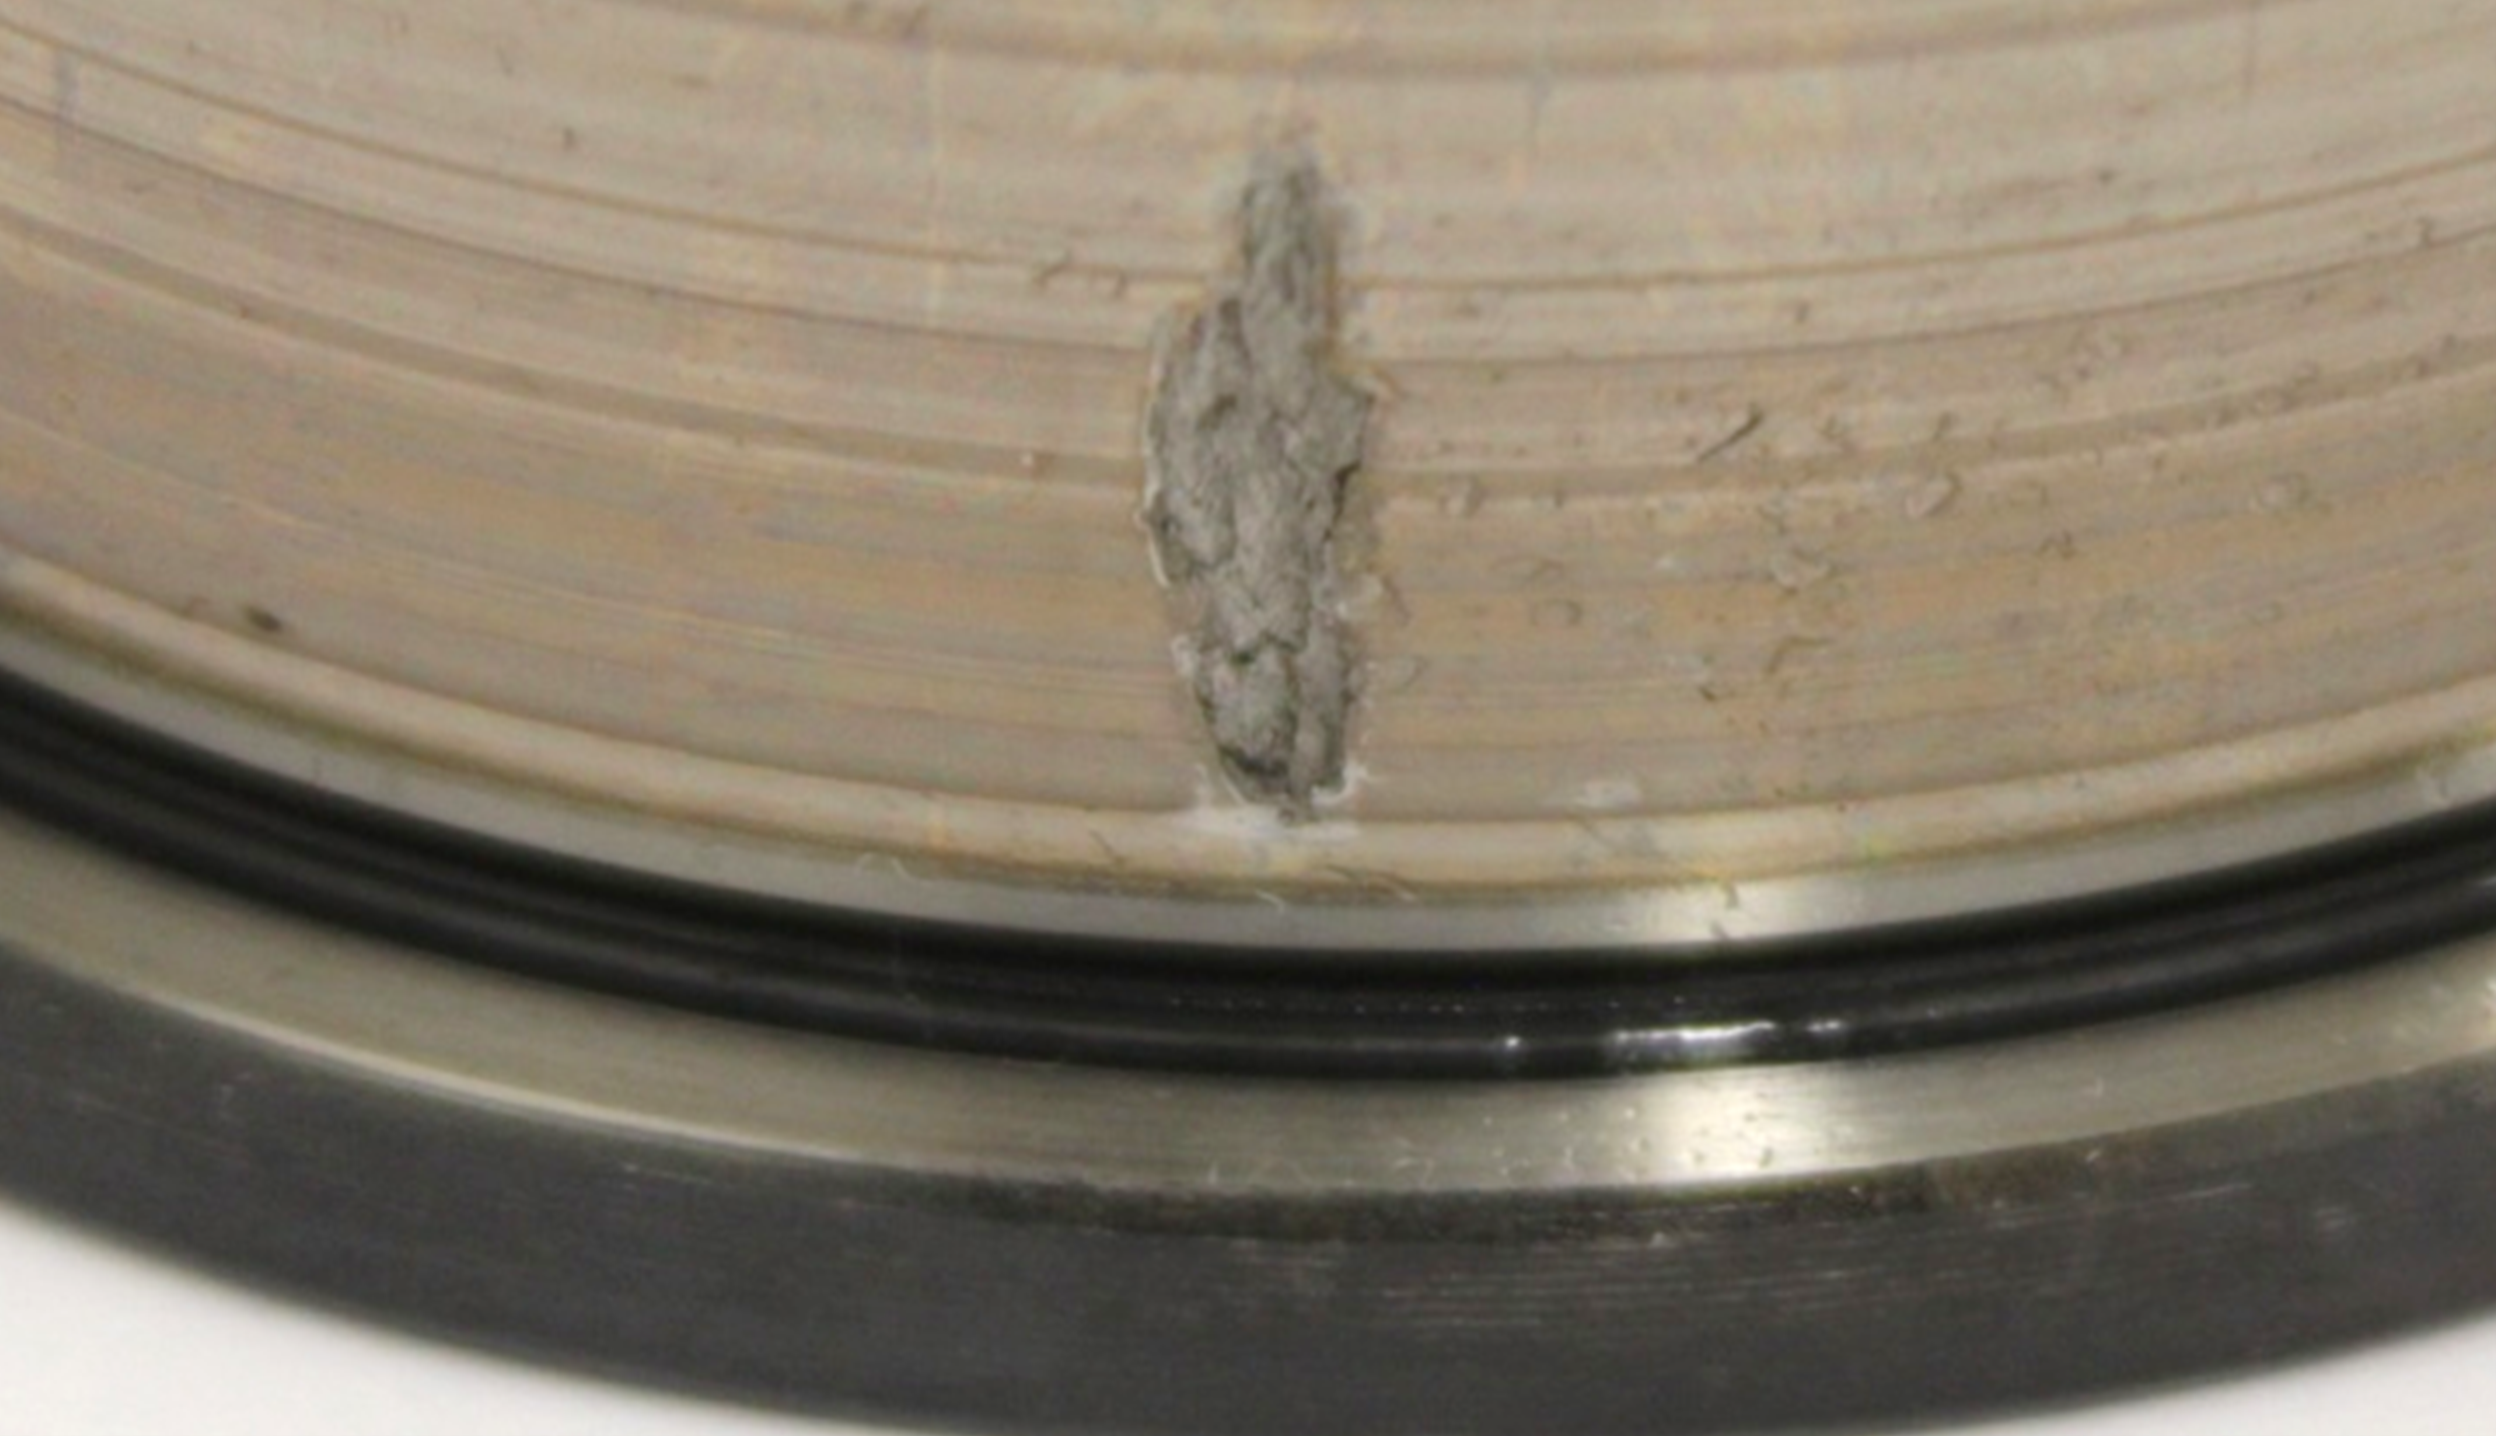 Reference damage pattern from a high load test rig experiment conducted by Elgeti Engineering